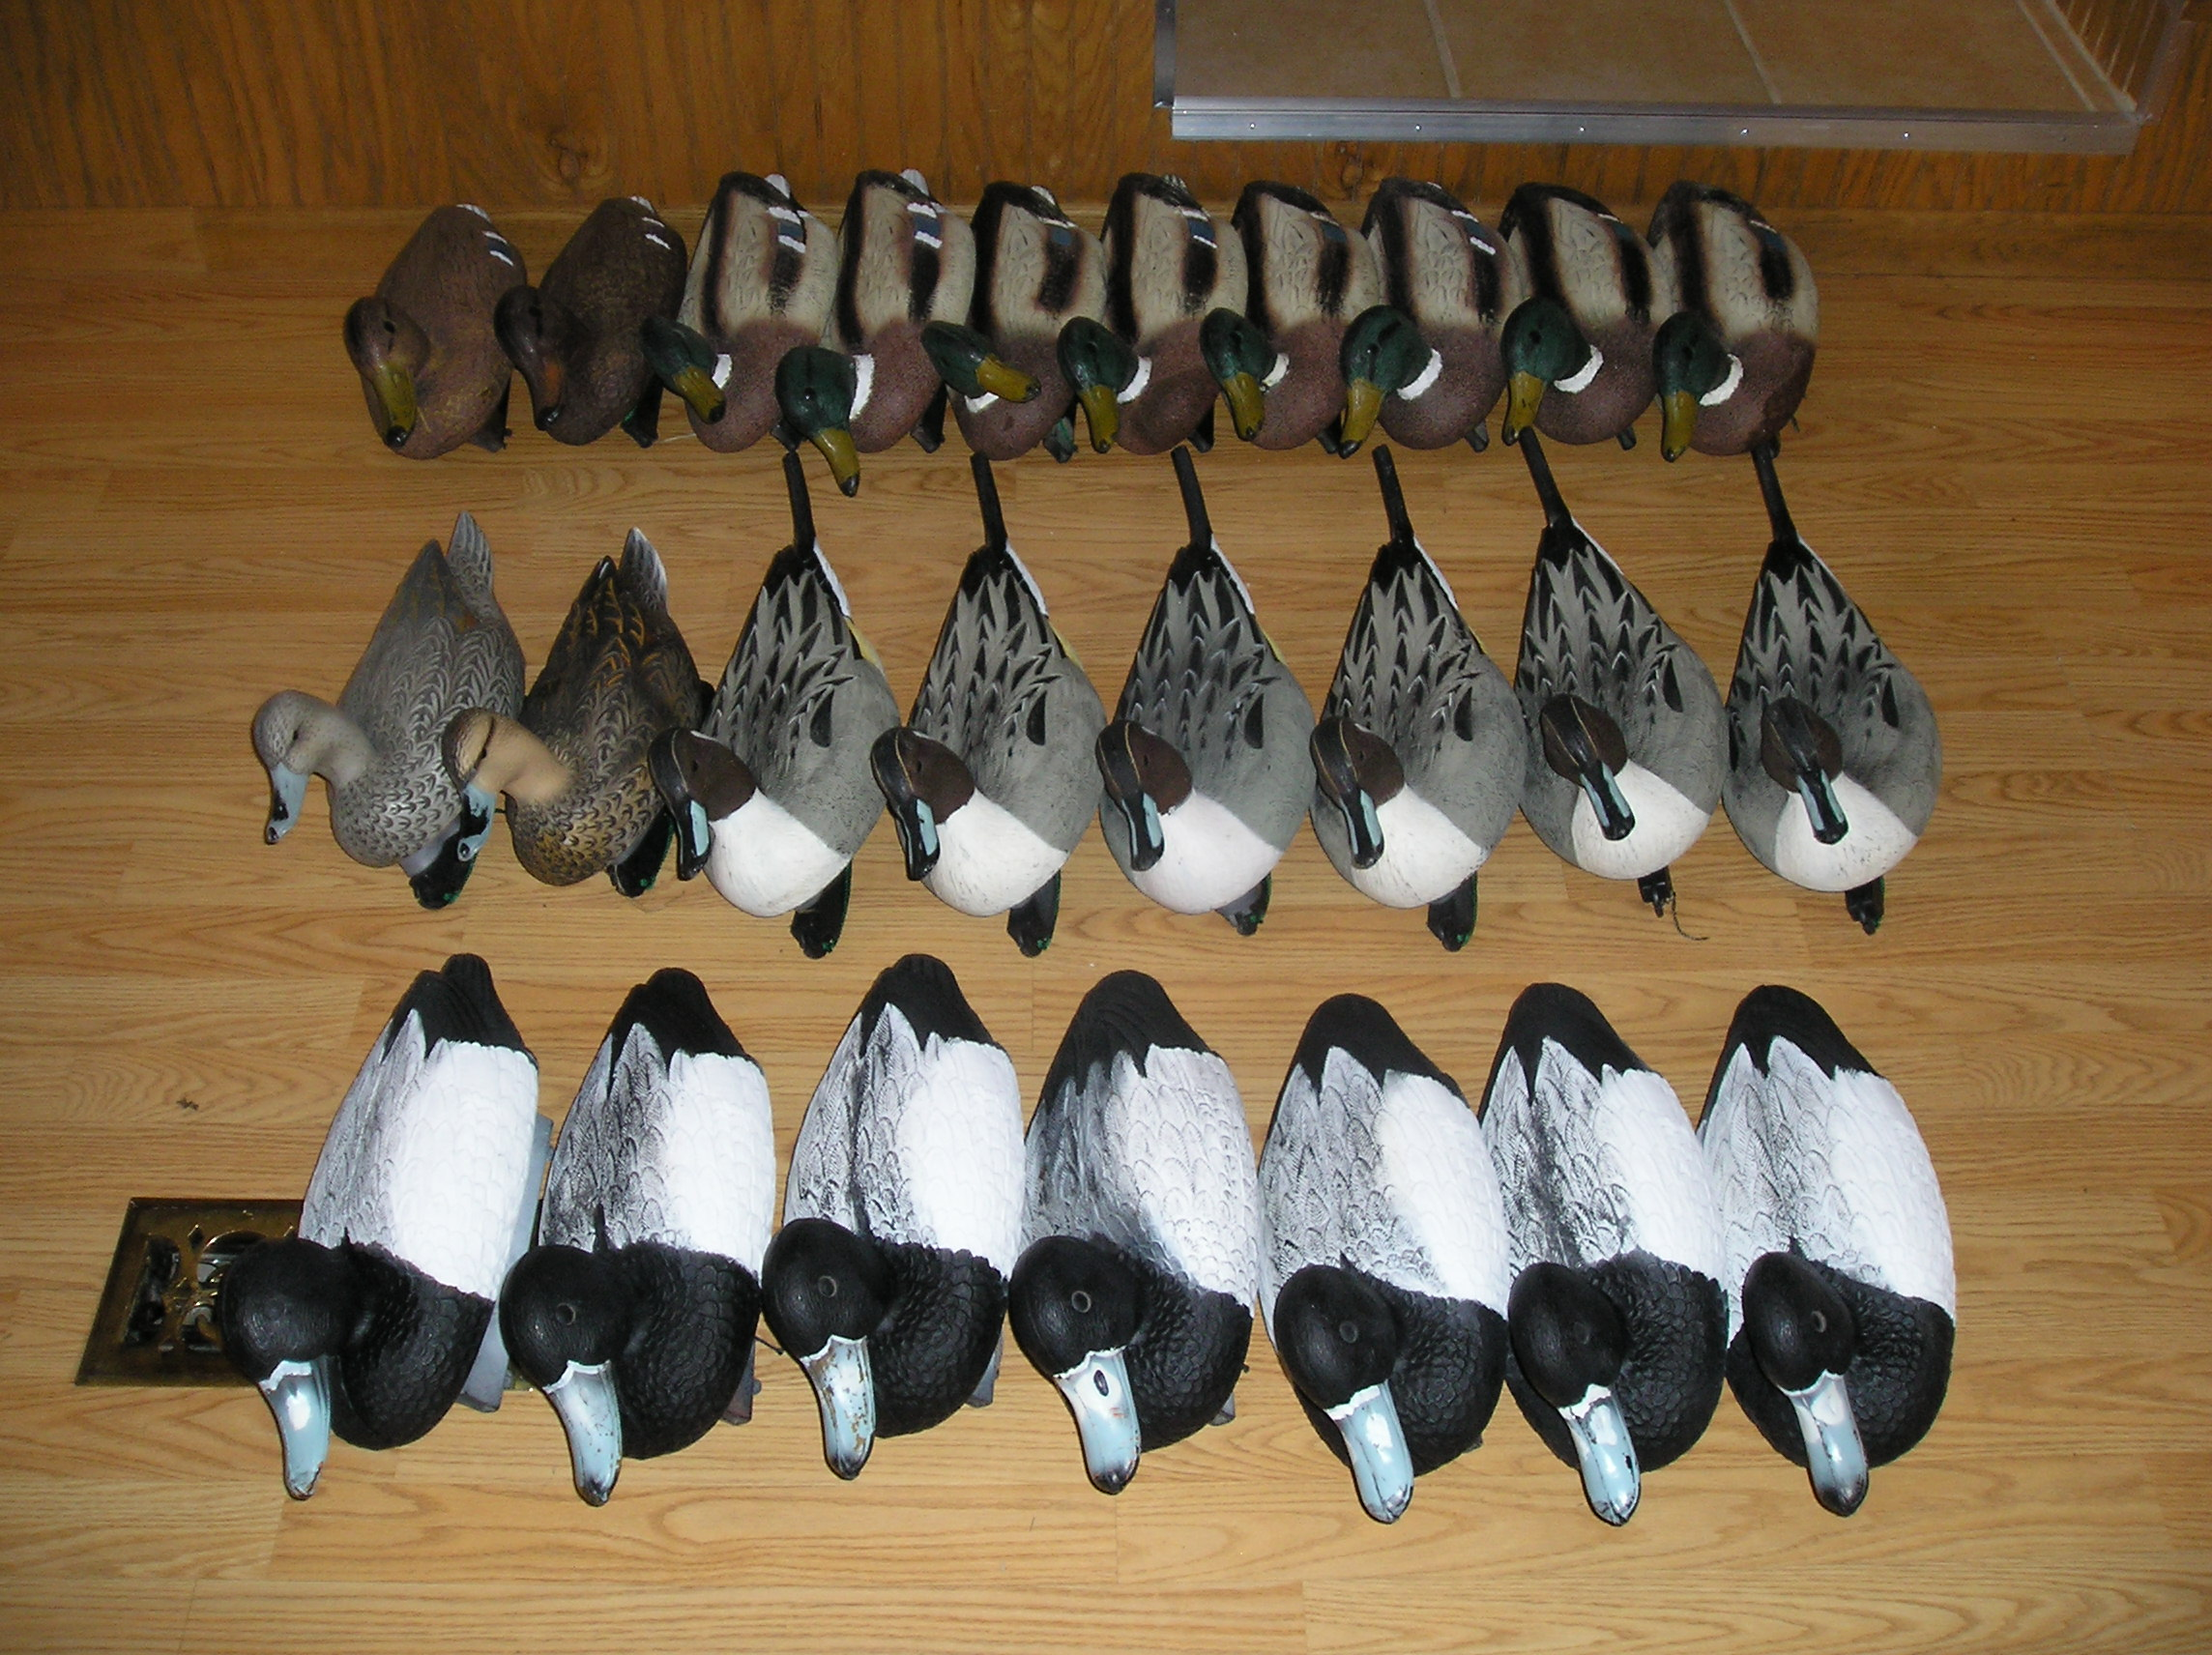 duck decoys 024.jpg